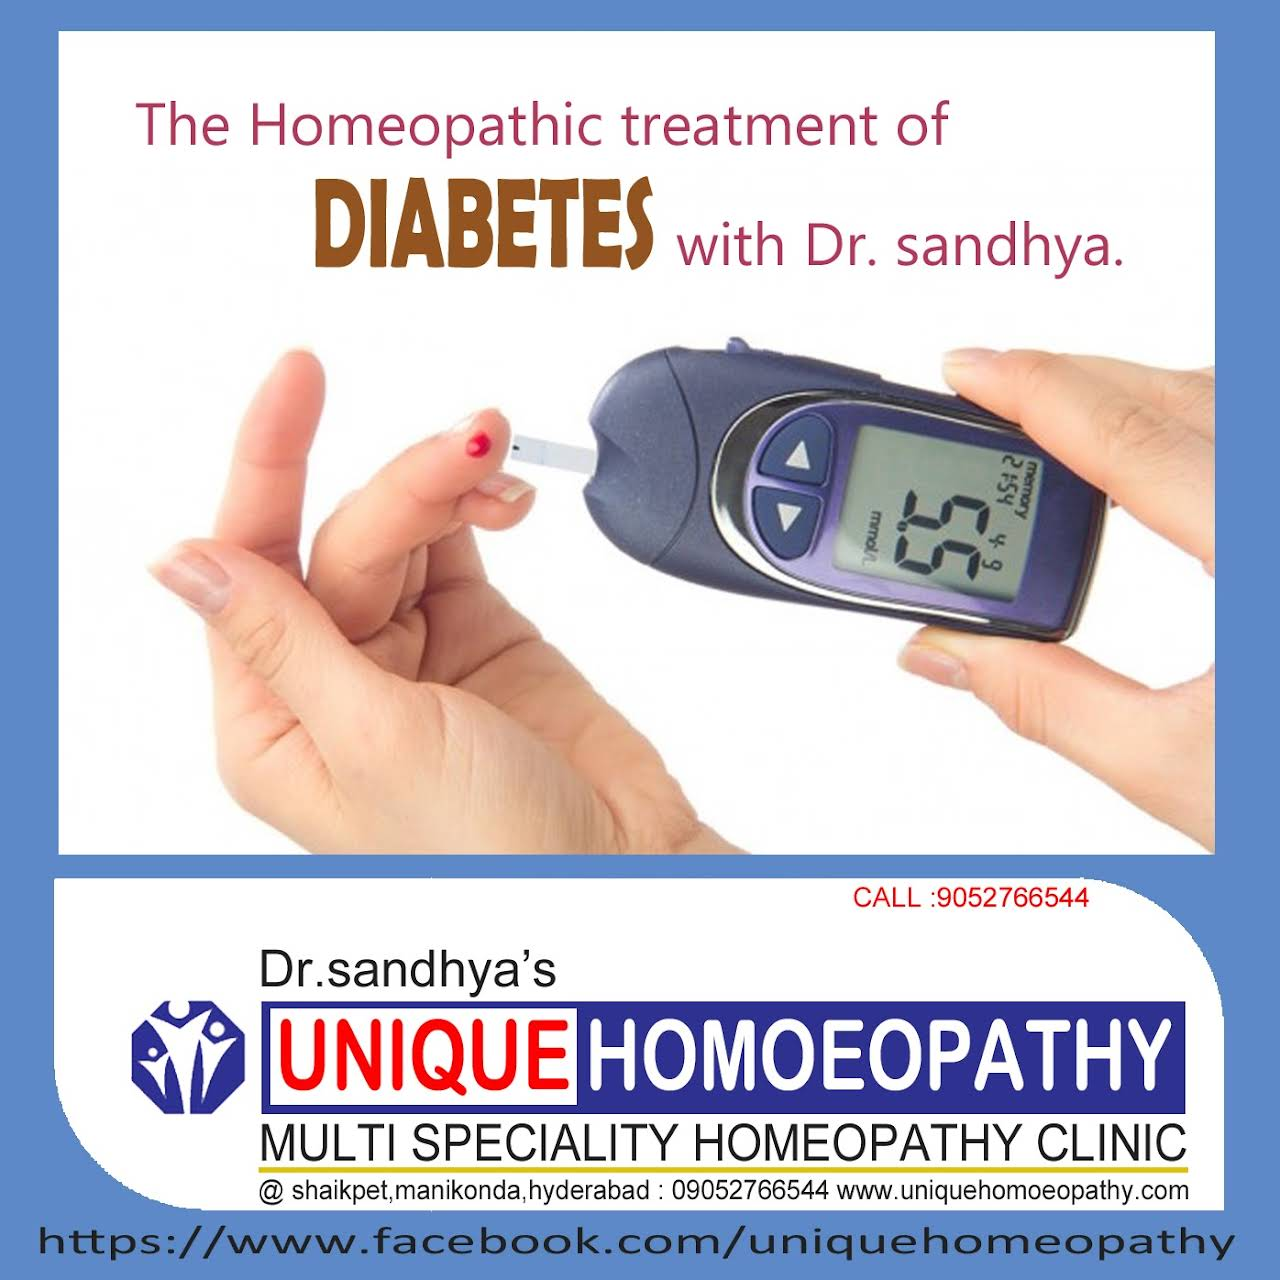 Dr Sandhyas Unique Homeopathy Multy speciality homeopathy clinic